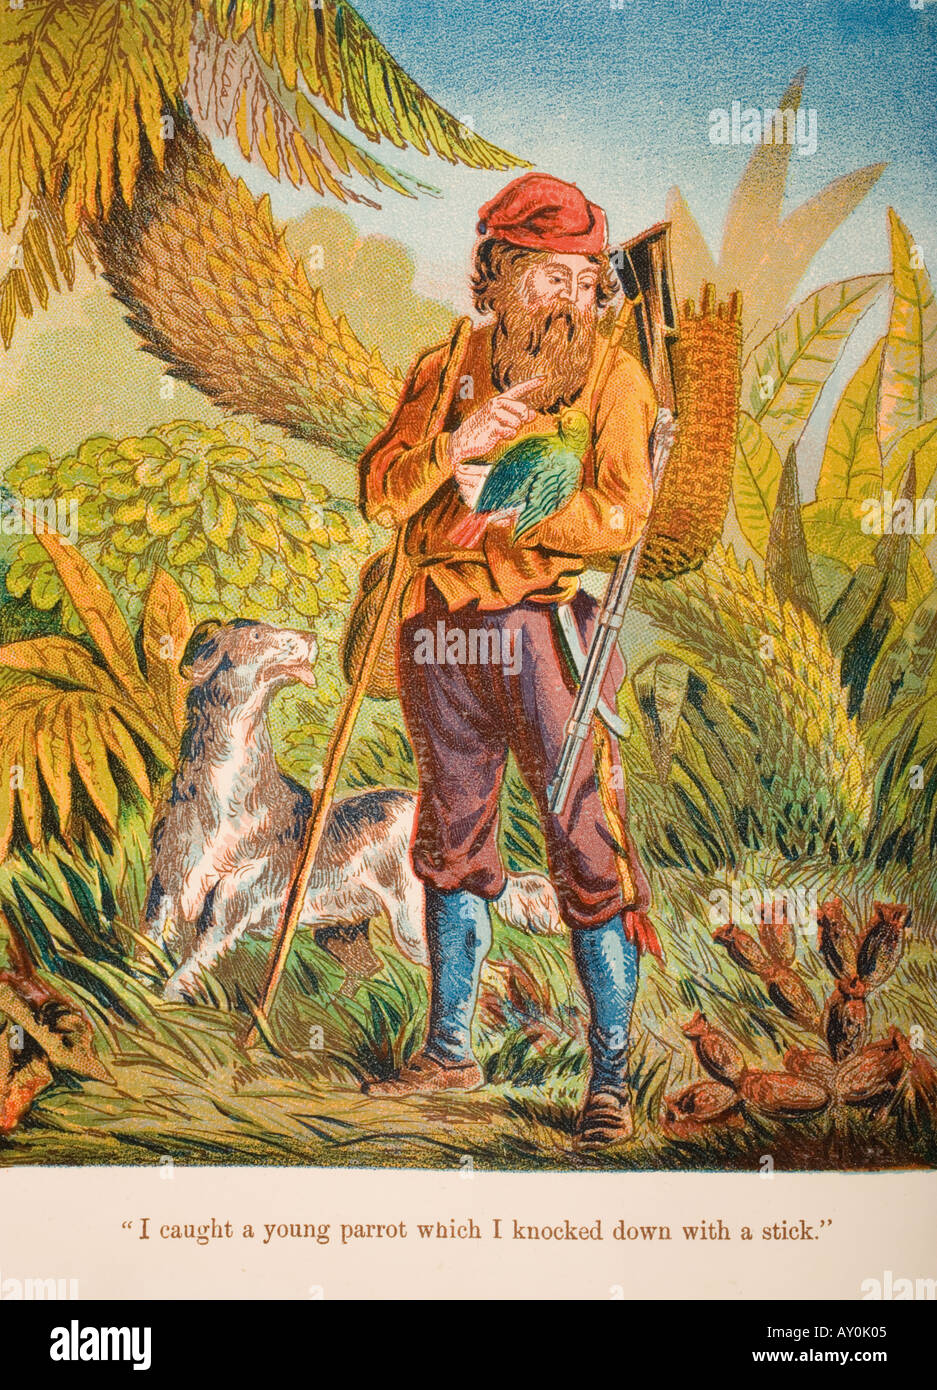 religion in robinson crusoe essay The religion in daniel defoe's robinson crusoe - - term paper - english language and literature studies - literature - publish your bachelor's or master's thesis, dissertation, term paper or essay.